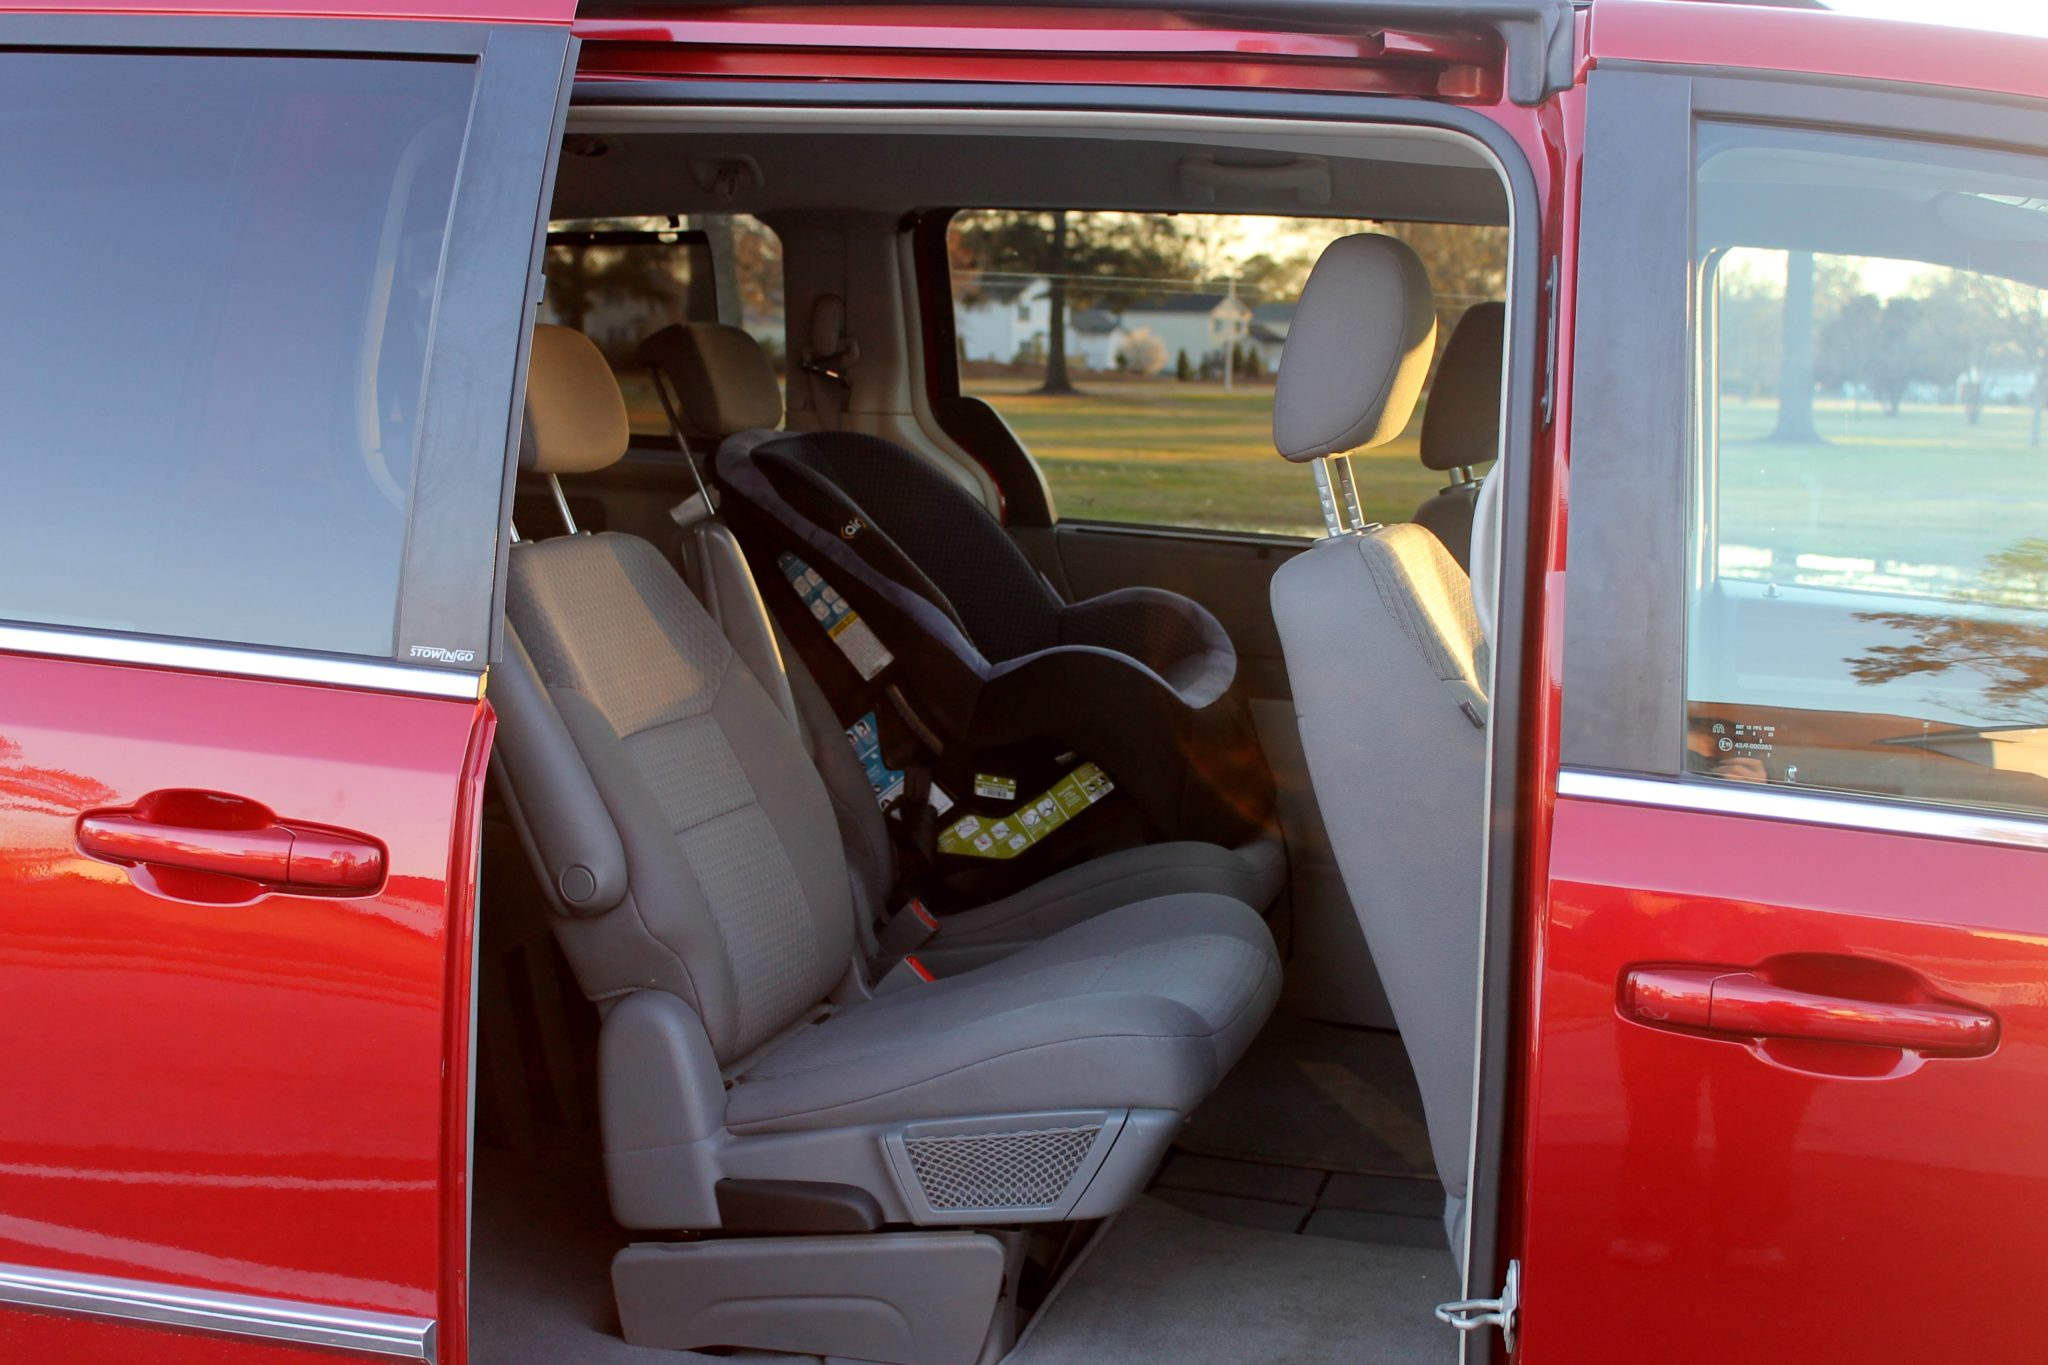 Bigger vehicle minivan pregnancy announcement idea